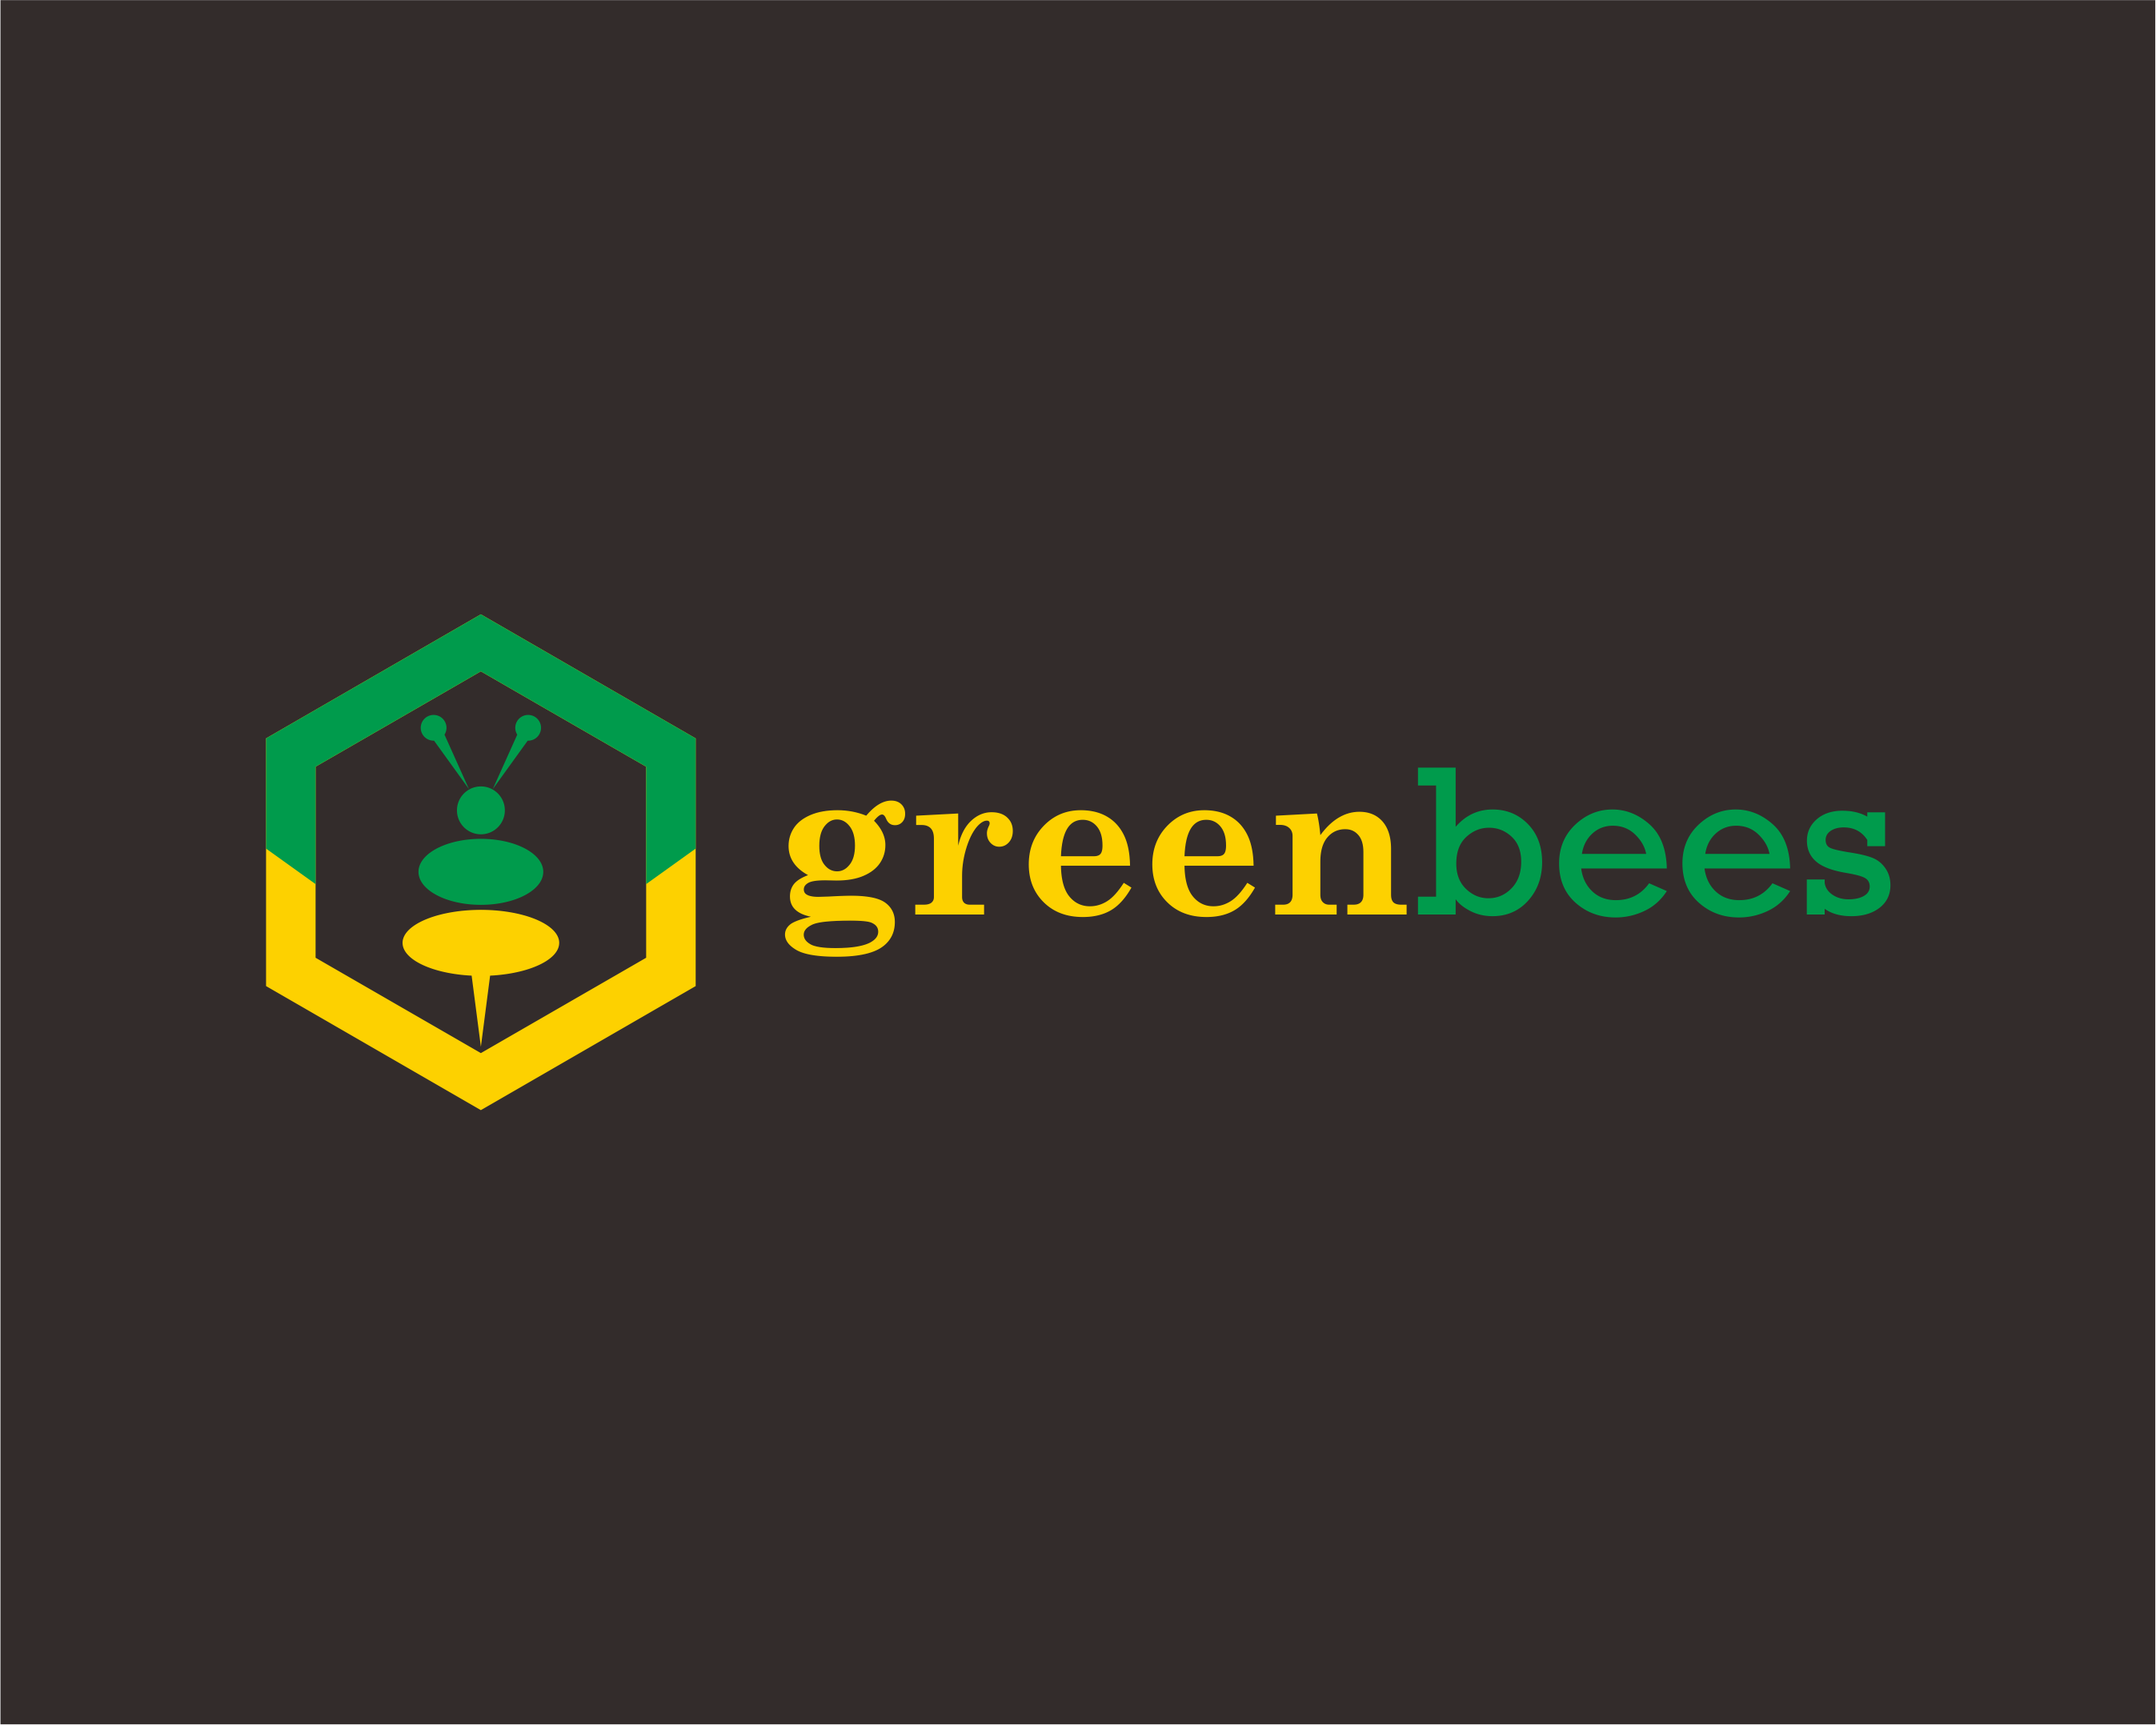 Logo Design by Armada Jamaluddin - Entry No. 365 in the Logo Design Contest Greenbees Logo Design.